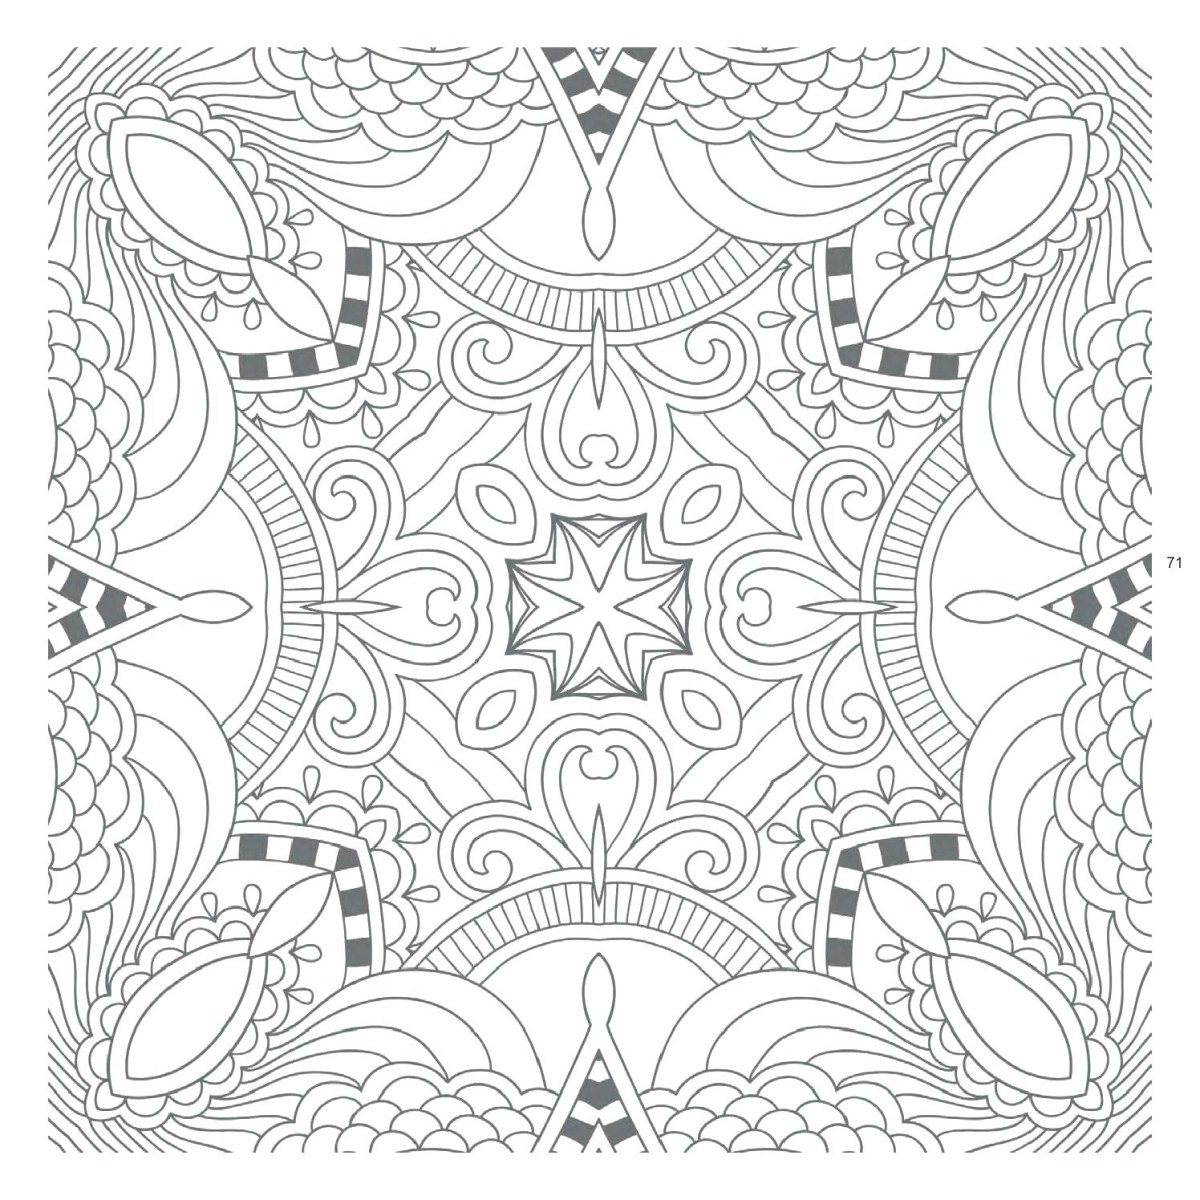 Downloadable Coloring Pages Coloring Page Outstanding Downloadable Coloring Pages